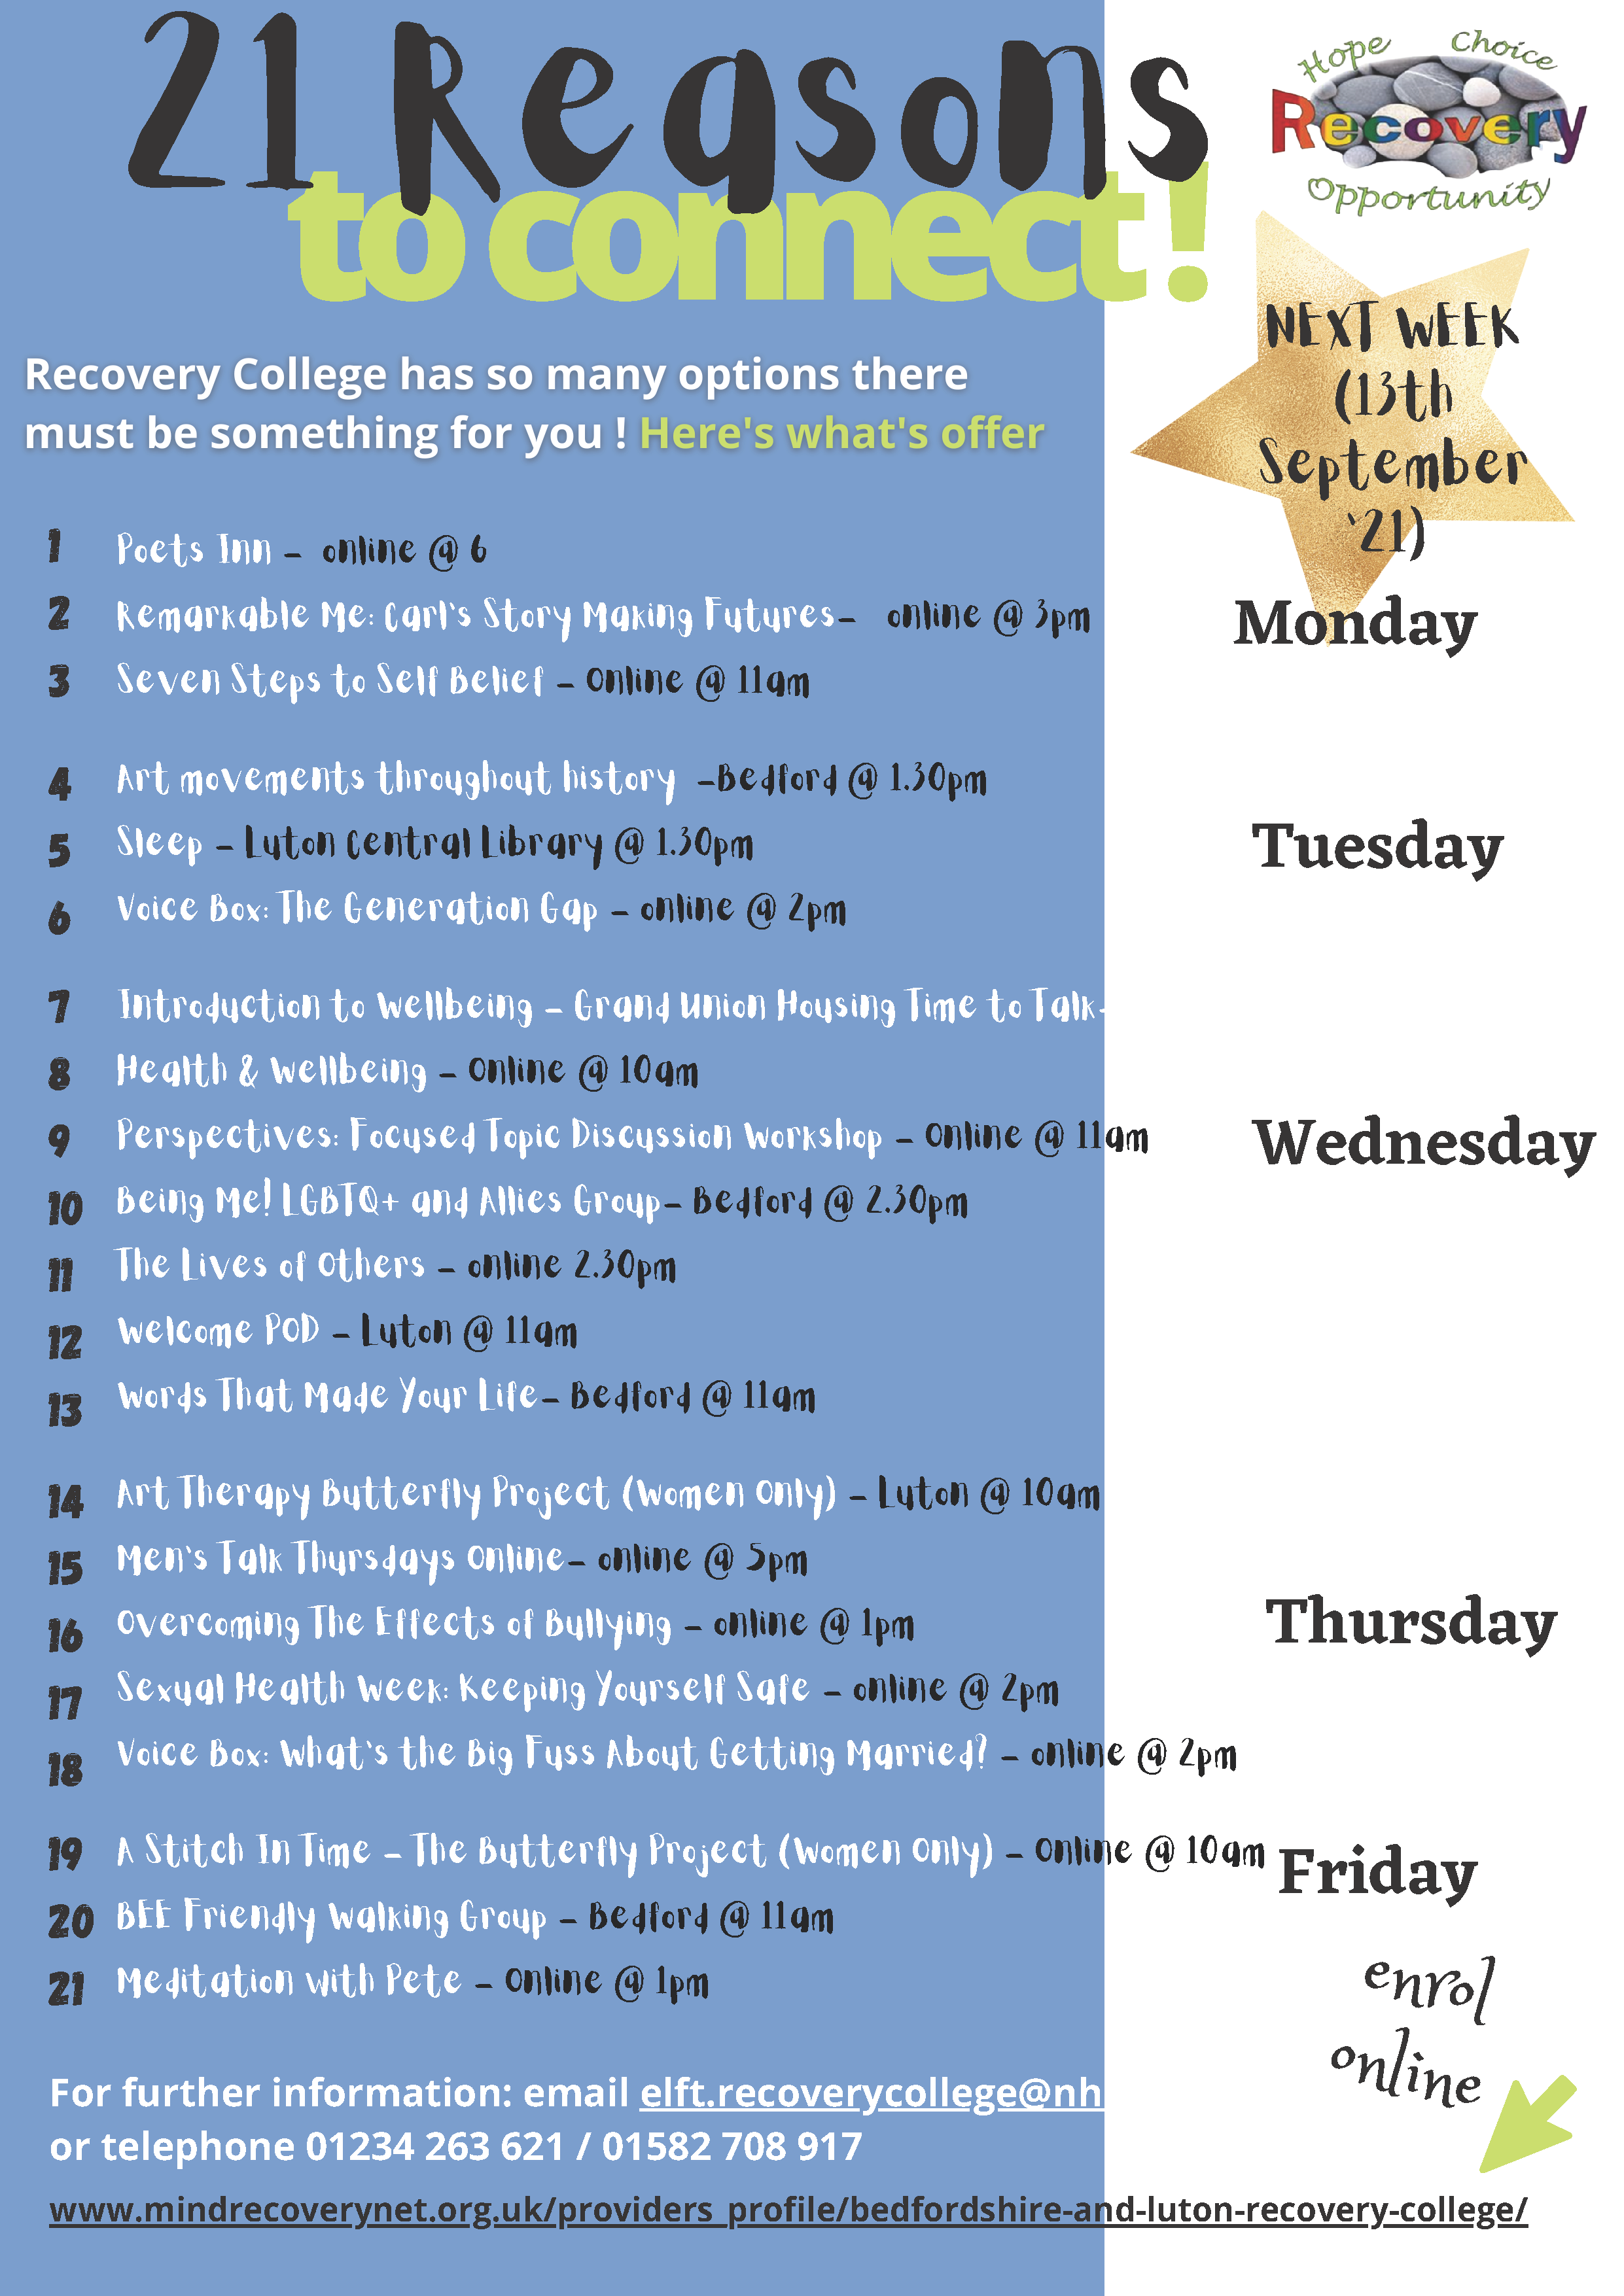 Recovery College events 13-17 Sept